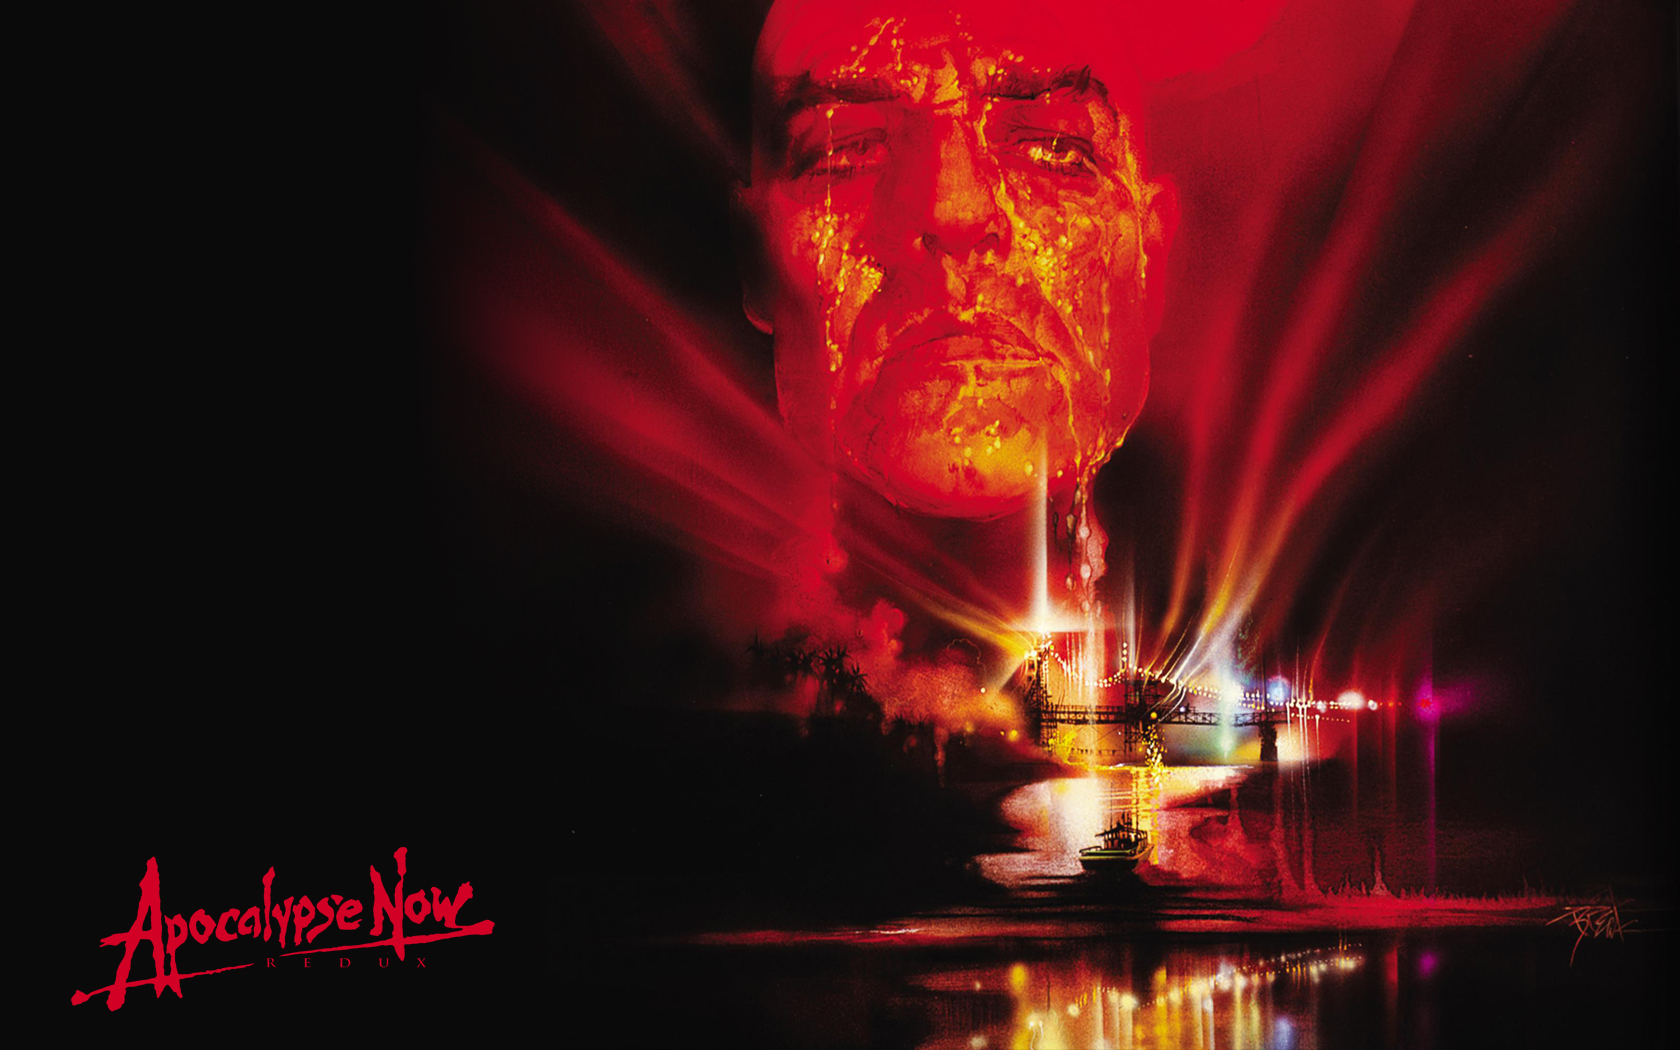 Apocalypse Now Redux Movie Poster Images amp Pictures   Becuo 1680x1050